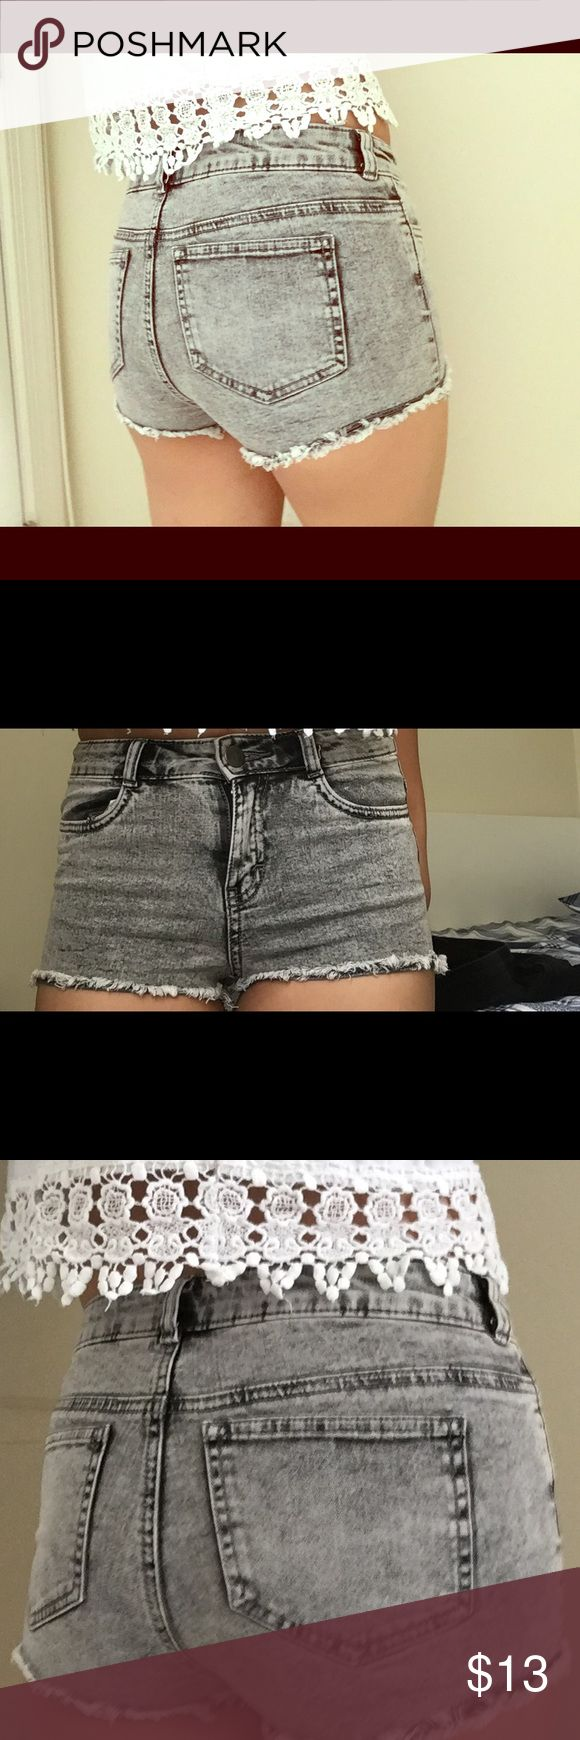 Gray Acid Washed Shorts • gray acid washed design shorts • frayed design at the ends of shorts • size 4 US & CA, 34 in EU only worn once, no damages xx H&M Shorts Jean Shorts